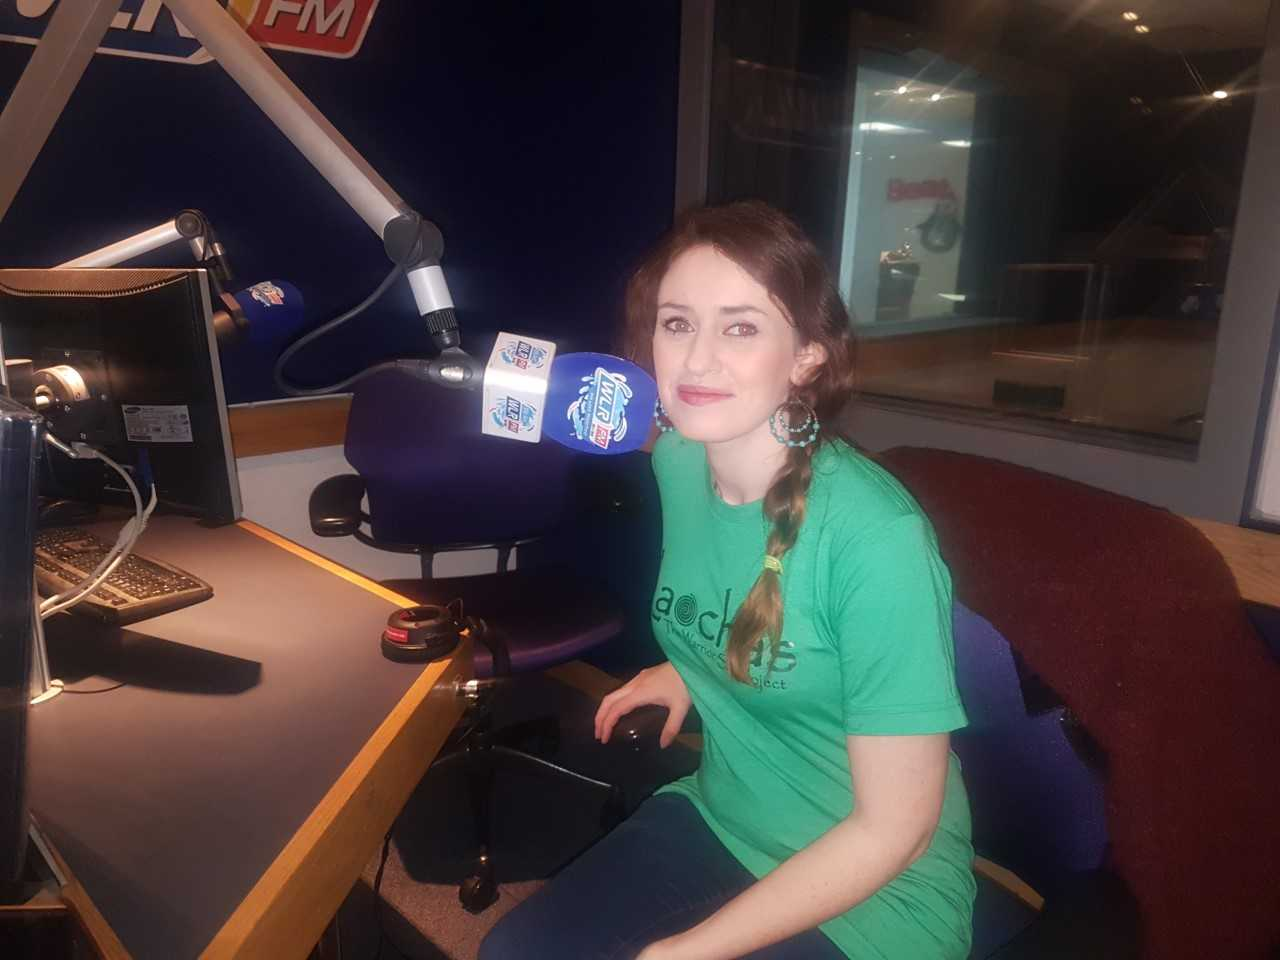 Listen back: Mary hears about a Battle of the Bands at Central Arts to promote youth mental health